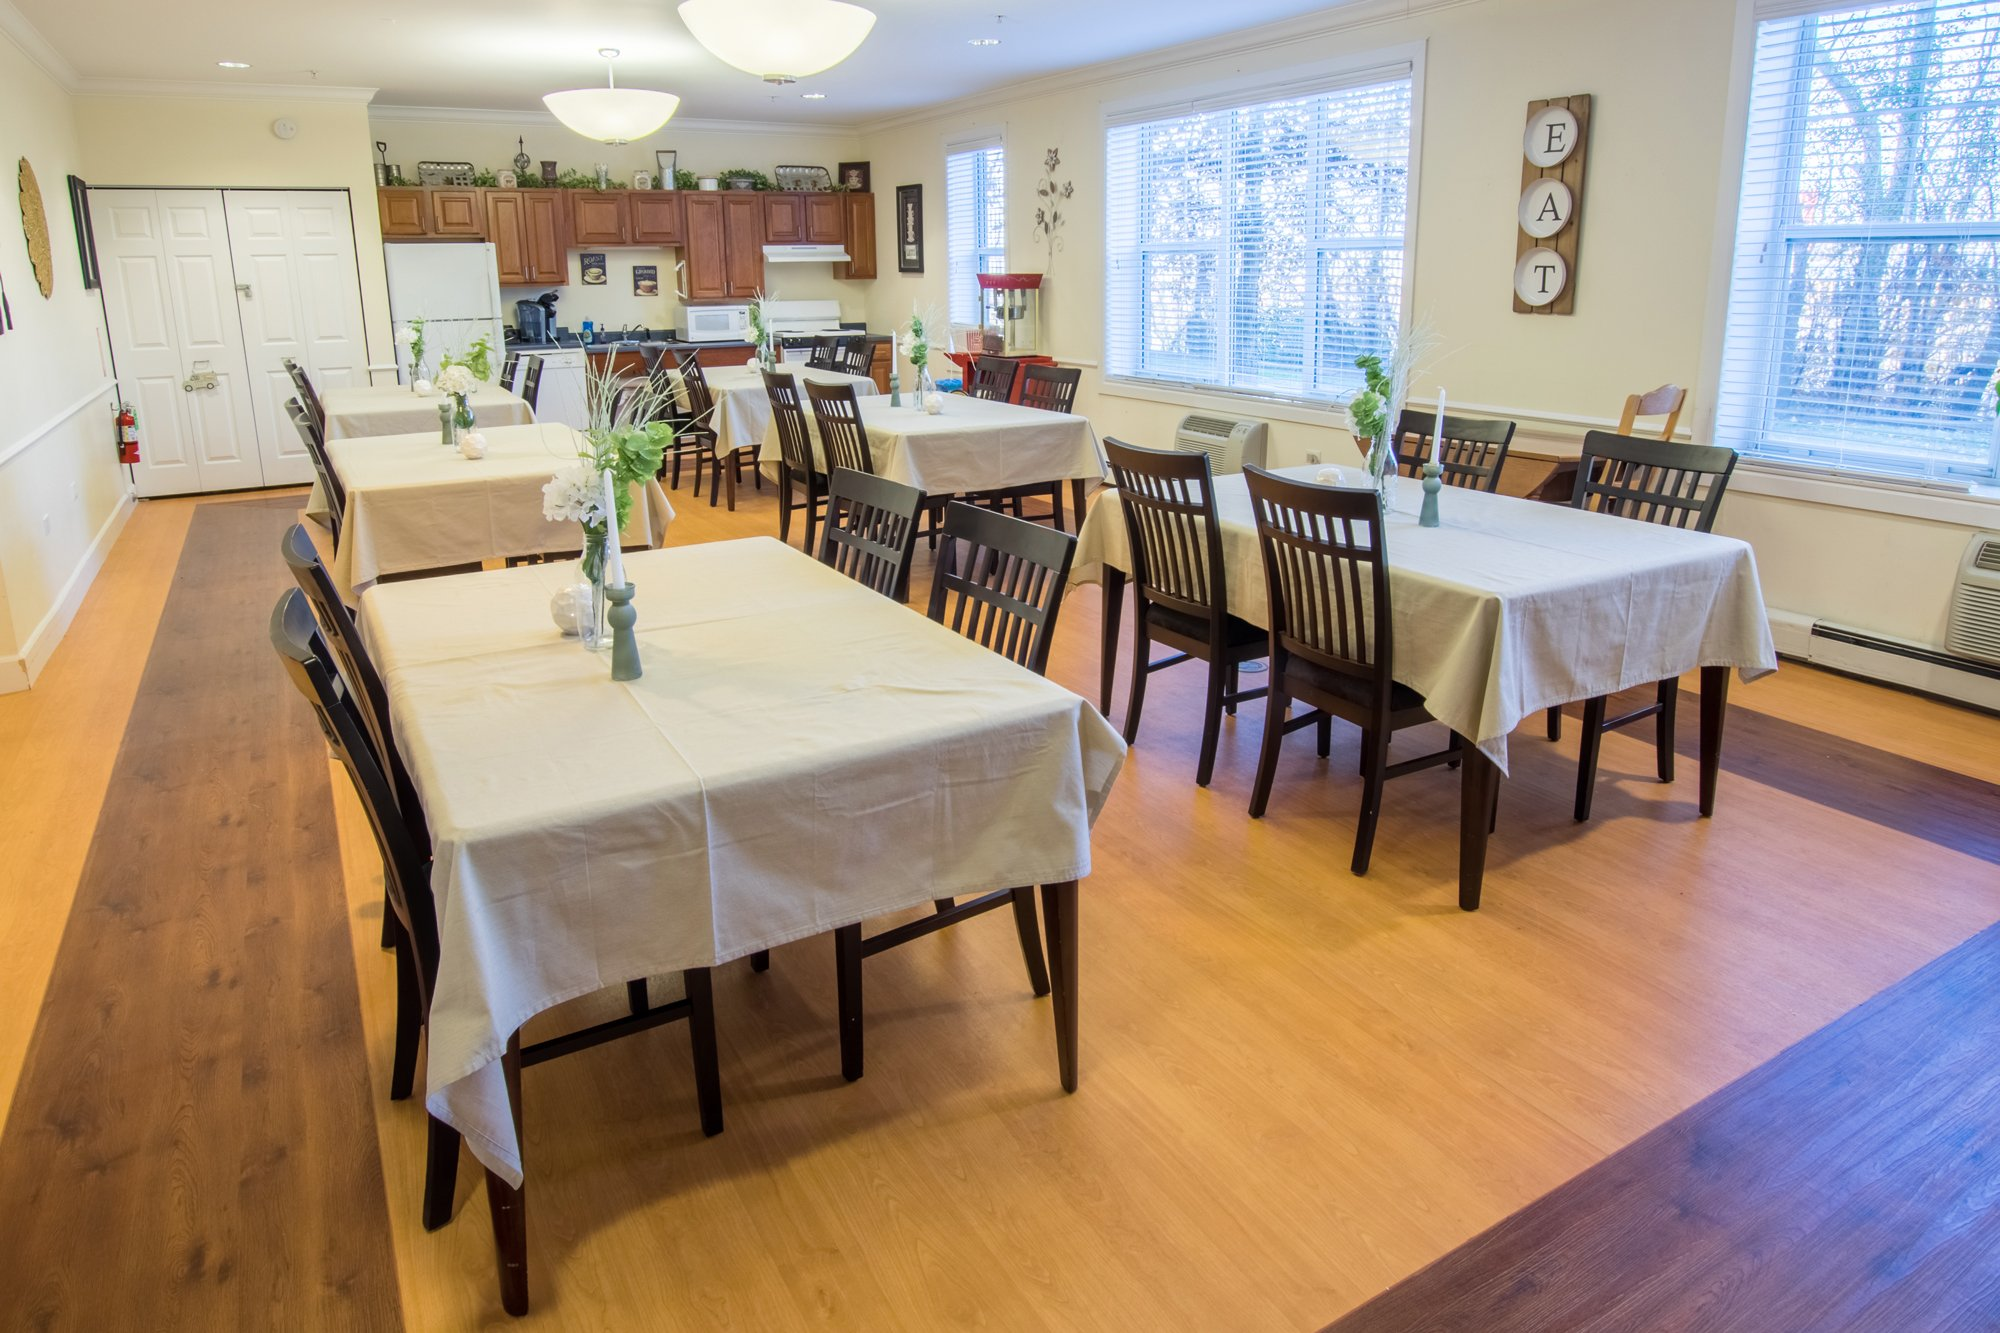 Kitchen and Dining Areas at Lakewood Towers Senior Apartments in Lake Villa, IL